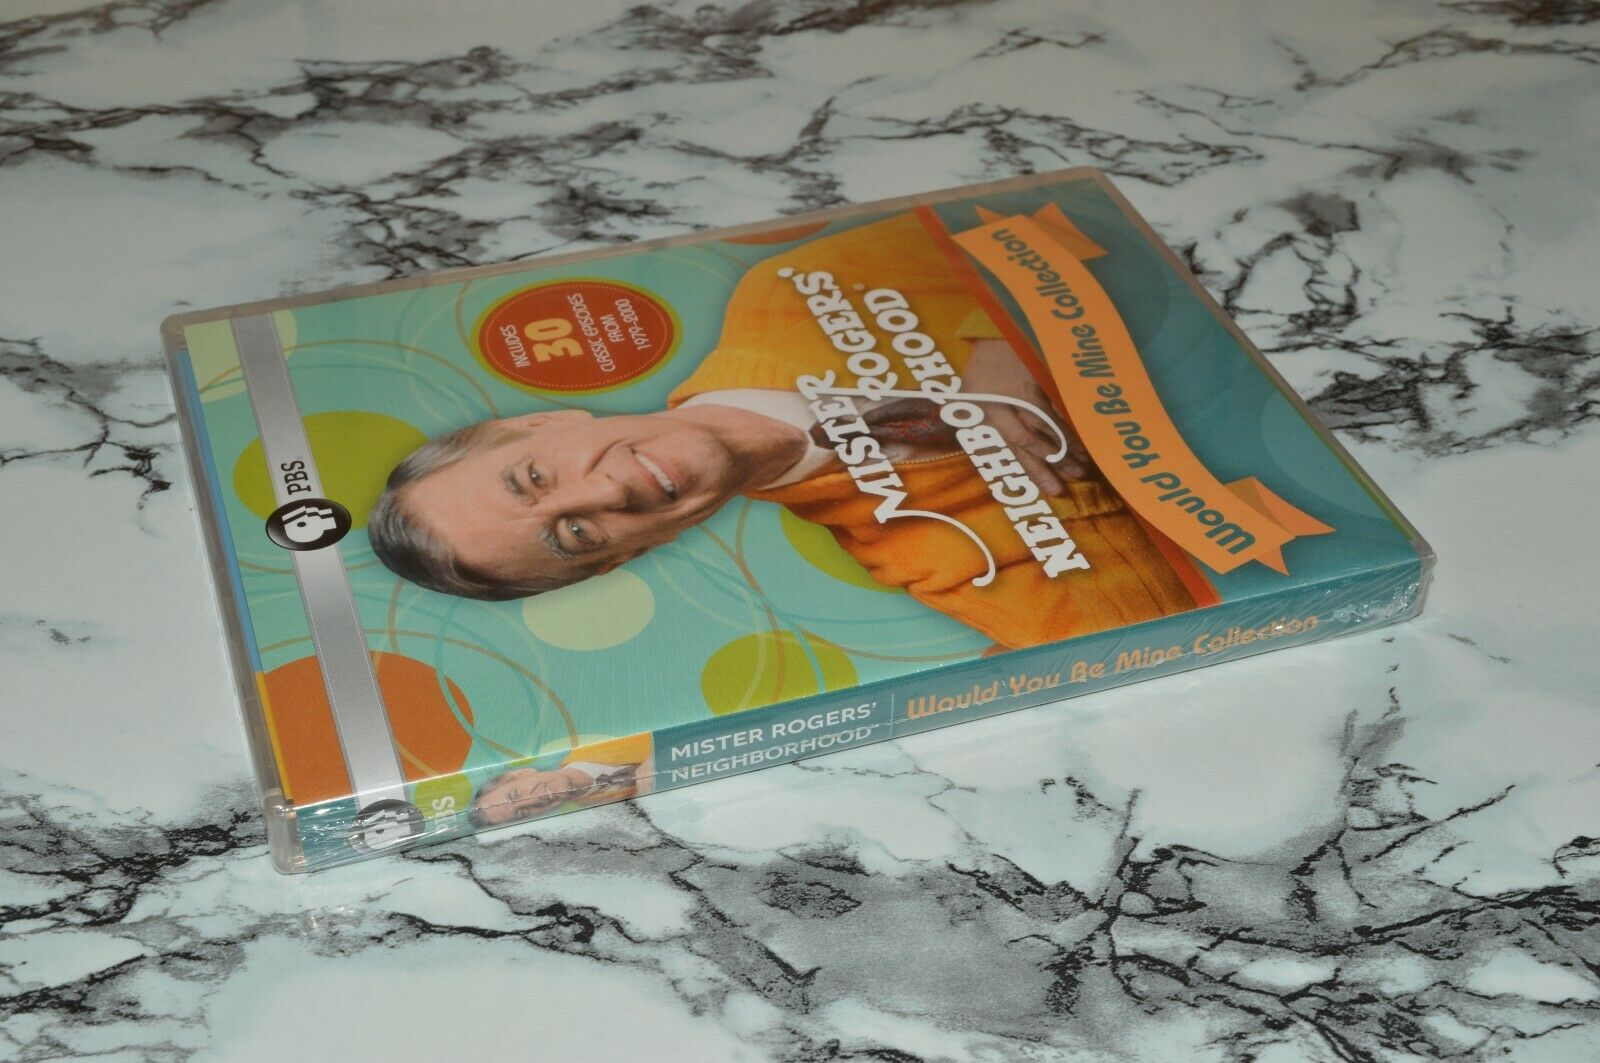 NEW - Mister Rogers Neighborhood - Would You Be Mine Collection DVD Set - PBS - $12.68